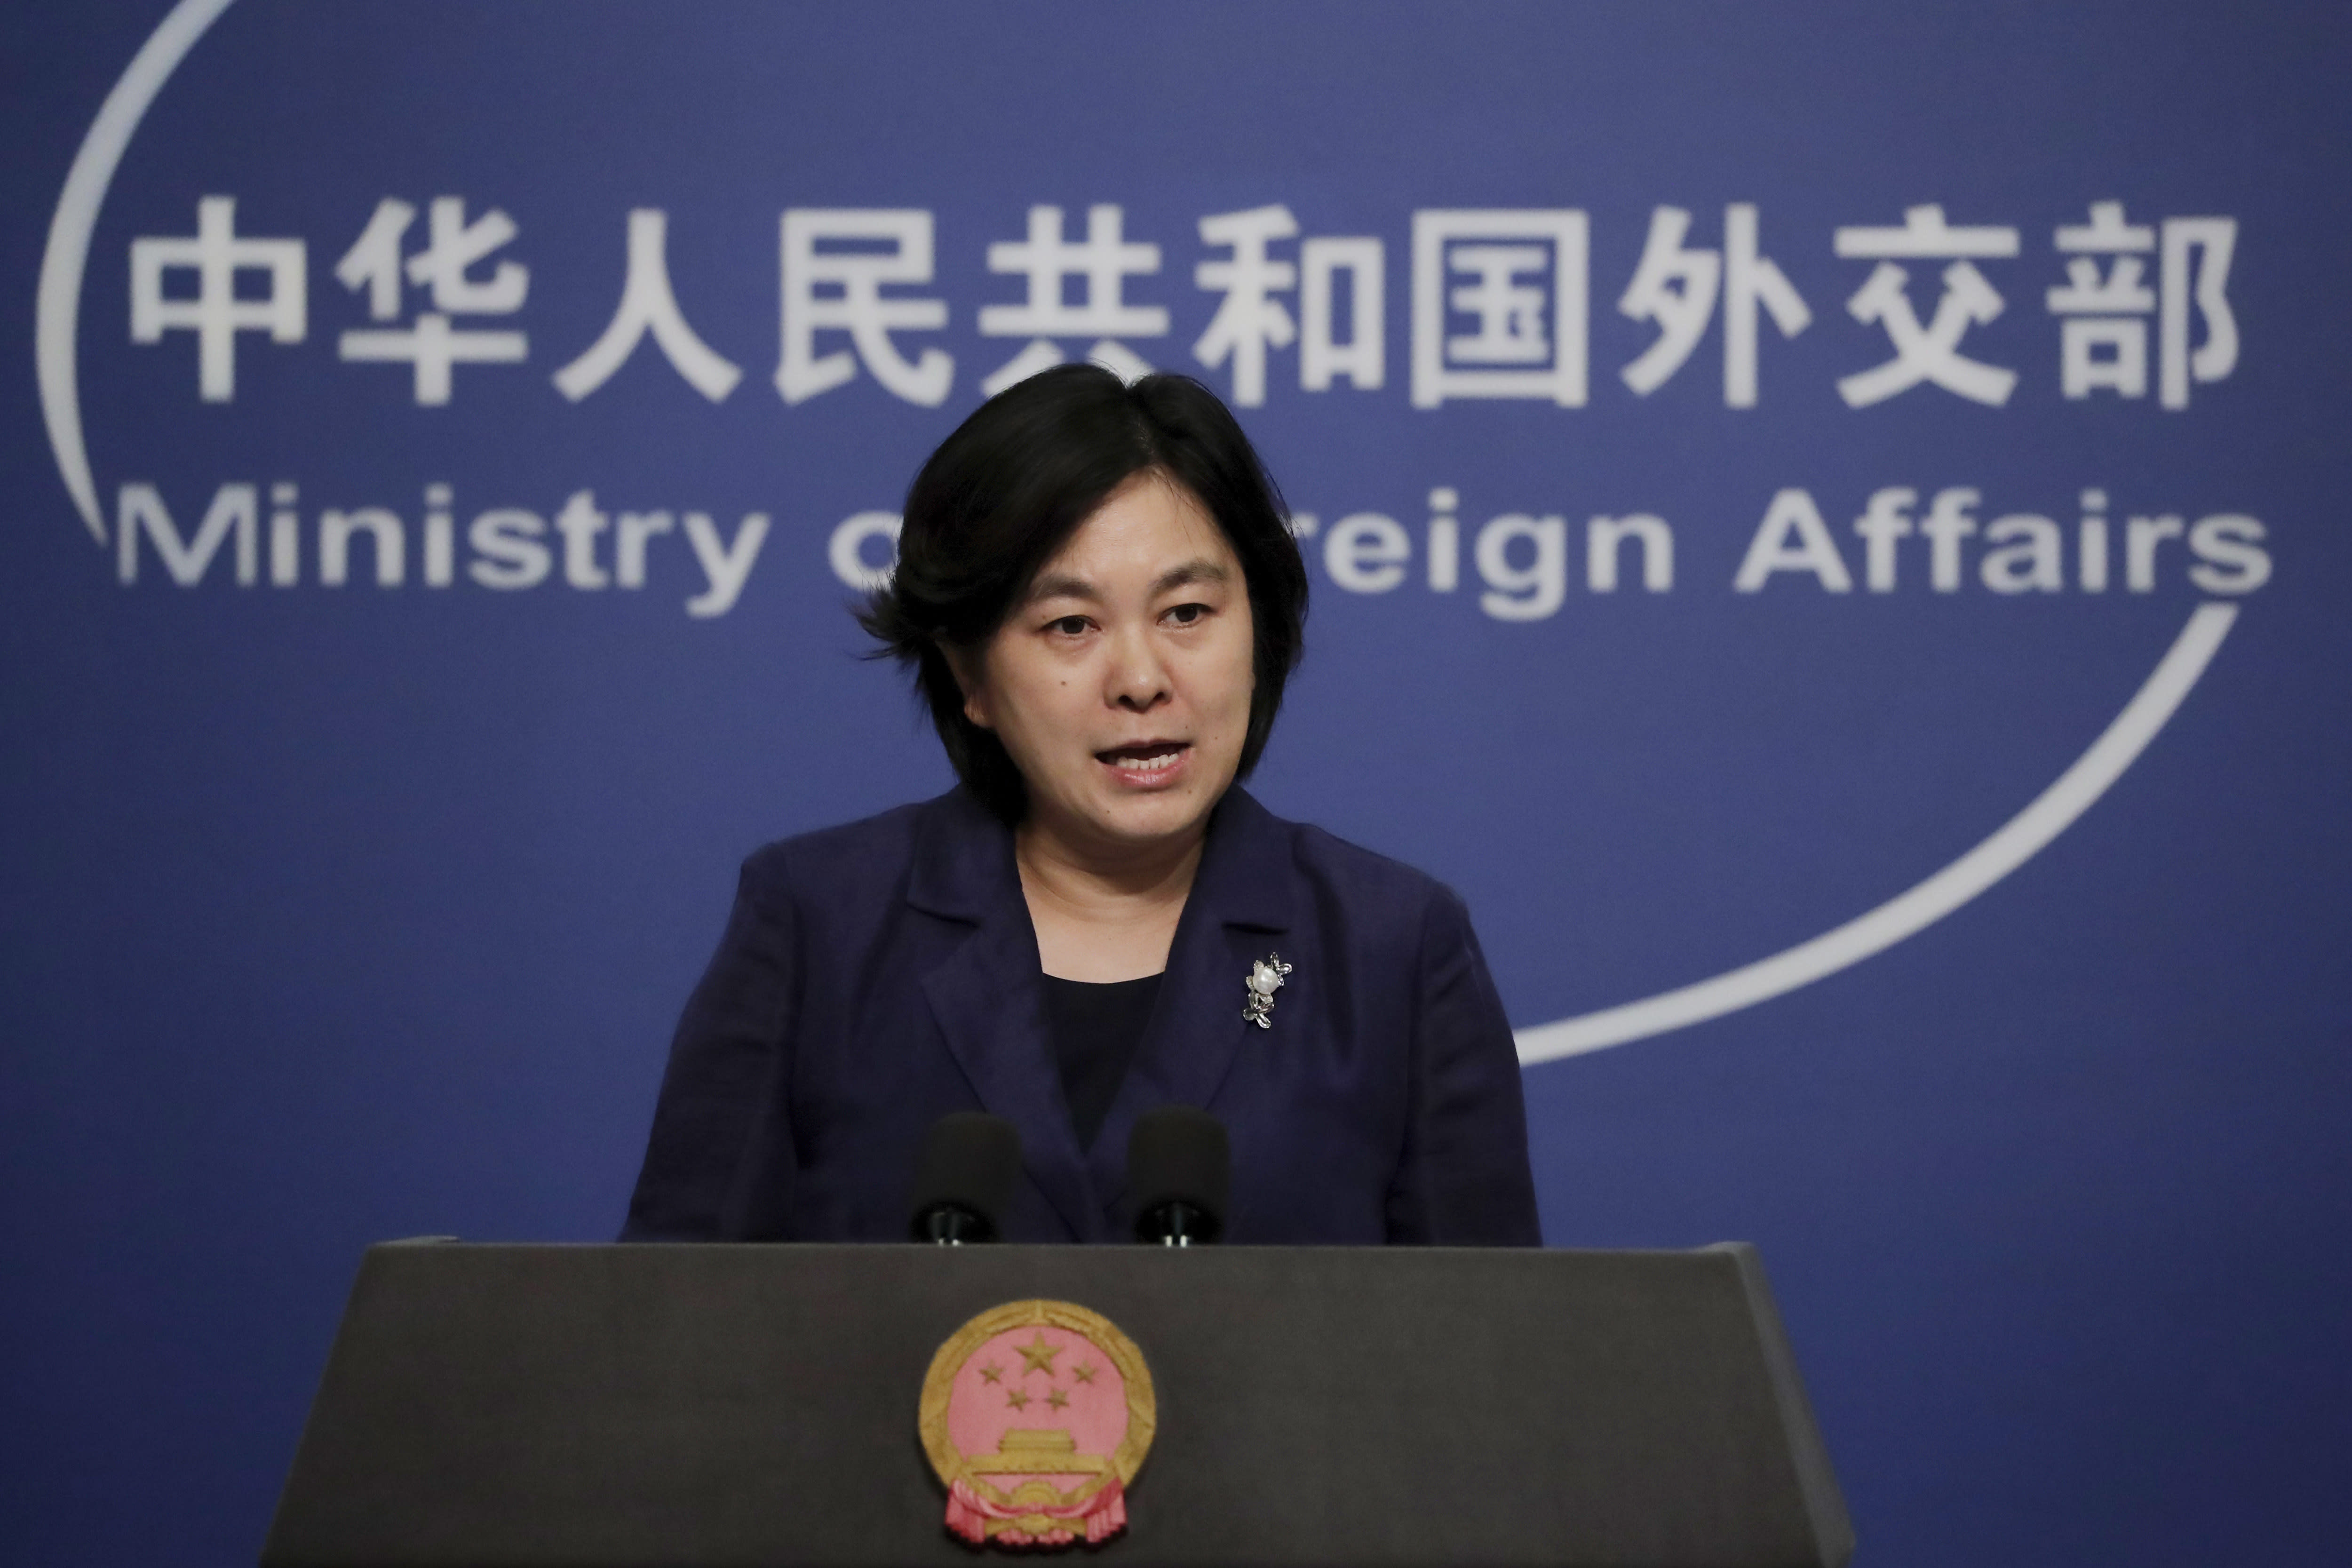 """Chinese Foreign Ministry spokeswoman Hua Chunying speaks during a daily briefing at the Ministry of Foreign Affairs office in Beijing, Tuesday, Sept. 1, 2020. Hua strongly condemned The Czech Senate President Milos Vystrcil 's visit to Taiwan, saying """"he is openly supporting the separatist forces and separatist activities in Taiwan that seriously violate China's sovereignty and China's internal affairs."""" (AP Photo/Andy Wong)"""